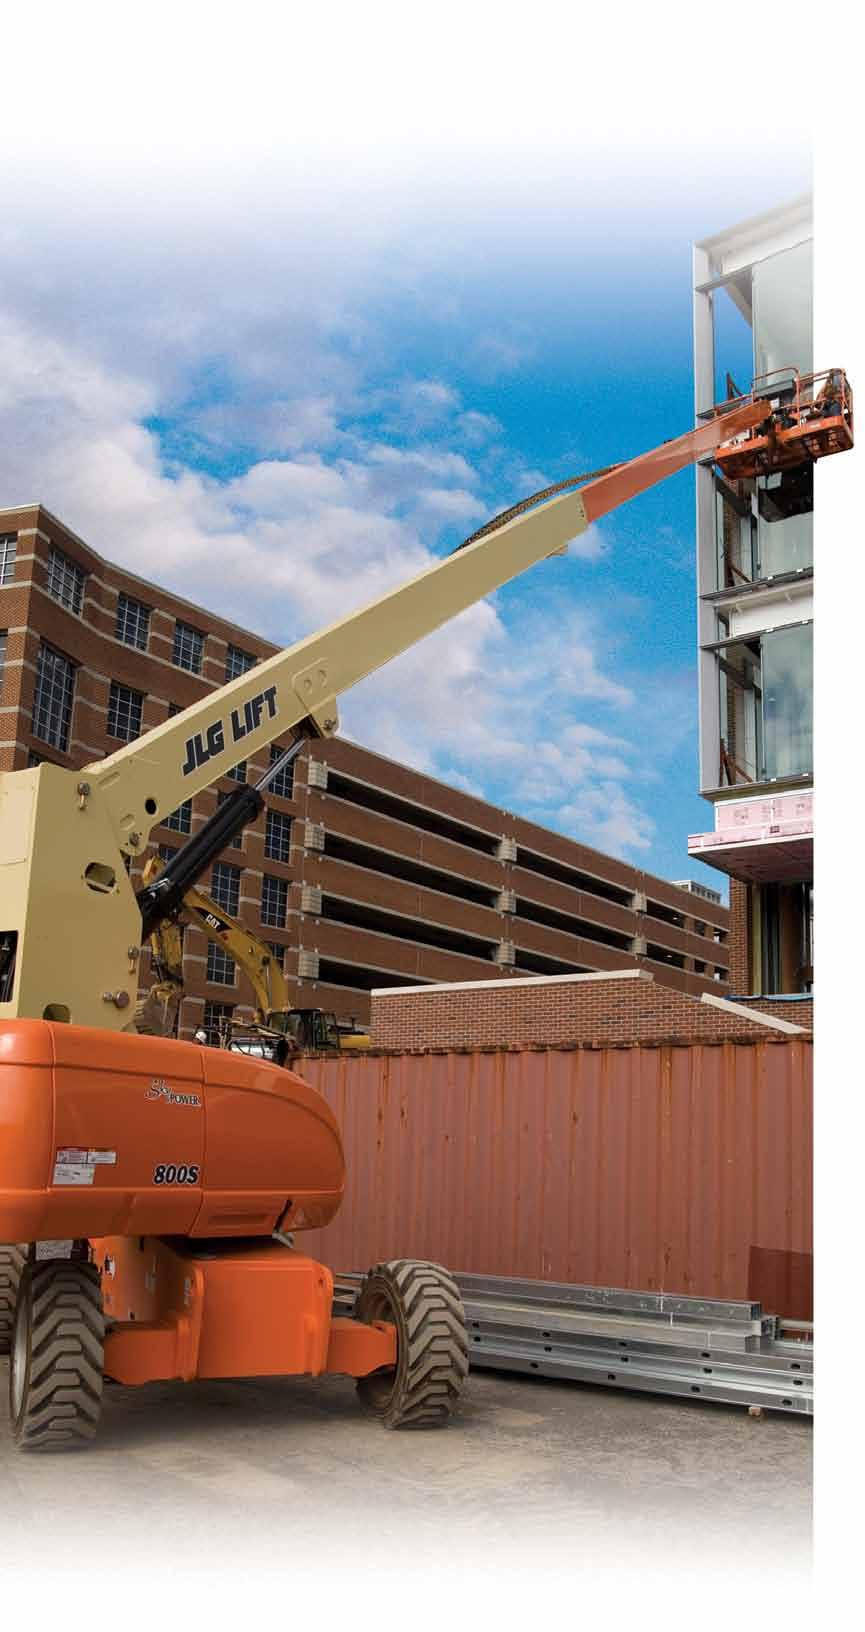 800 Series Telescopic Boom Lifts Higher Reach. Confident Control. Spend your time getting your work done. Go from the ground to 80 ft in less than 67 seconds that s 40% faster than the competition.